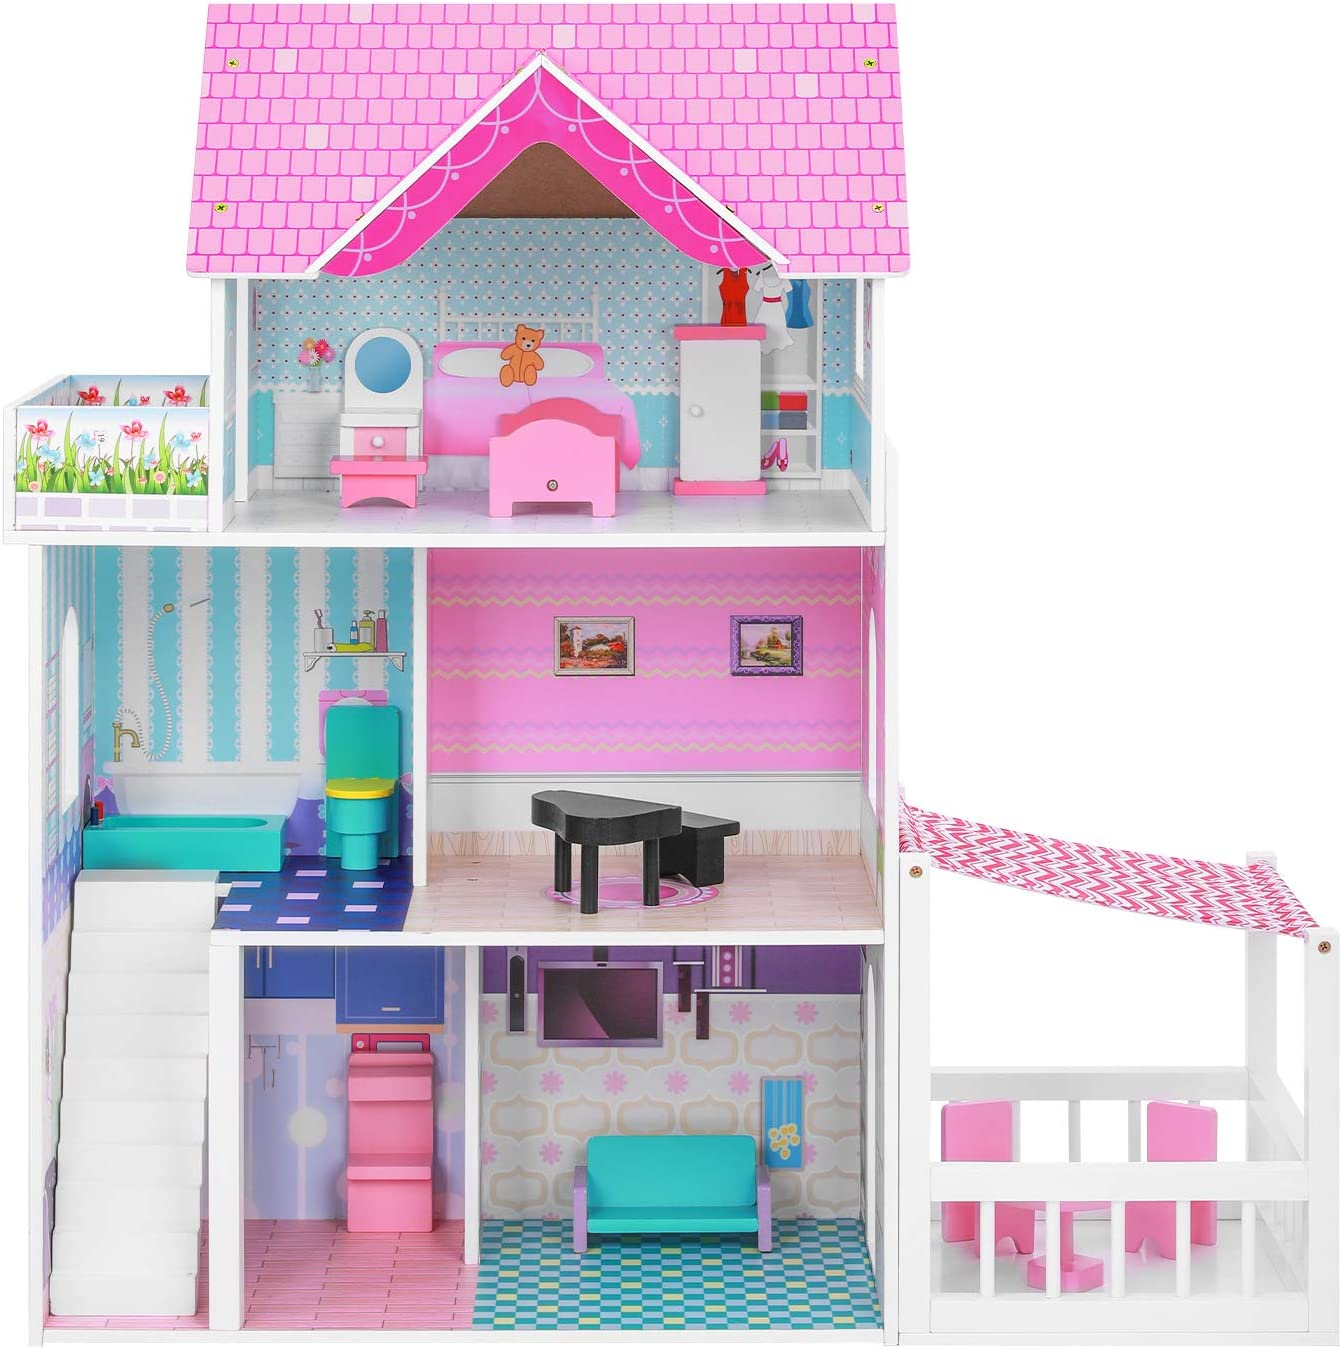 BABLE Dollhouse with Dollhouse Furniture, Doll House for Little Girls 3-8 Year Old, Kids Pretend Play Doll House Toy Play Set Perfect Girls' Toy with Accessories, for Girl